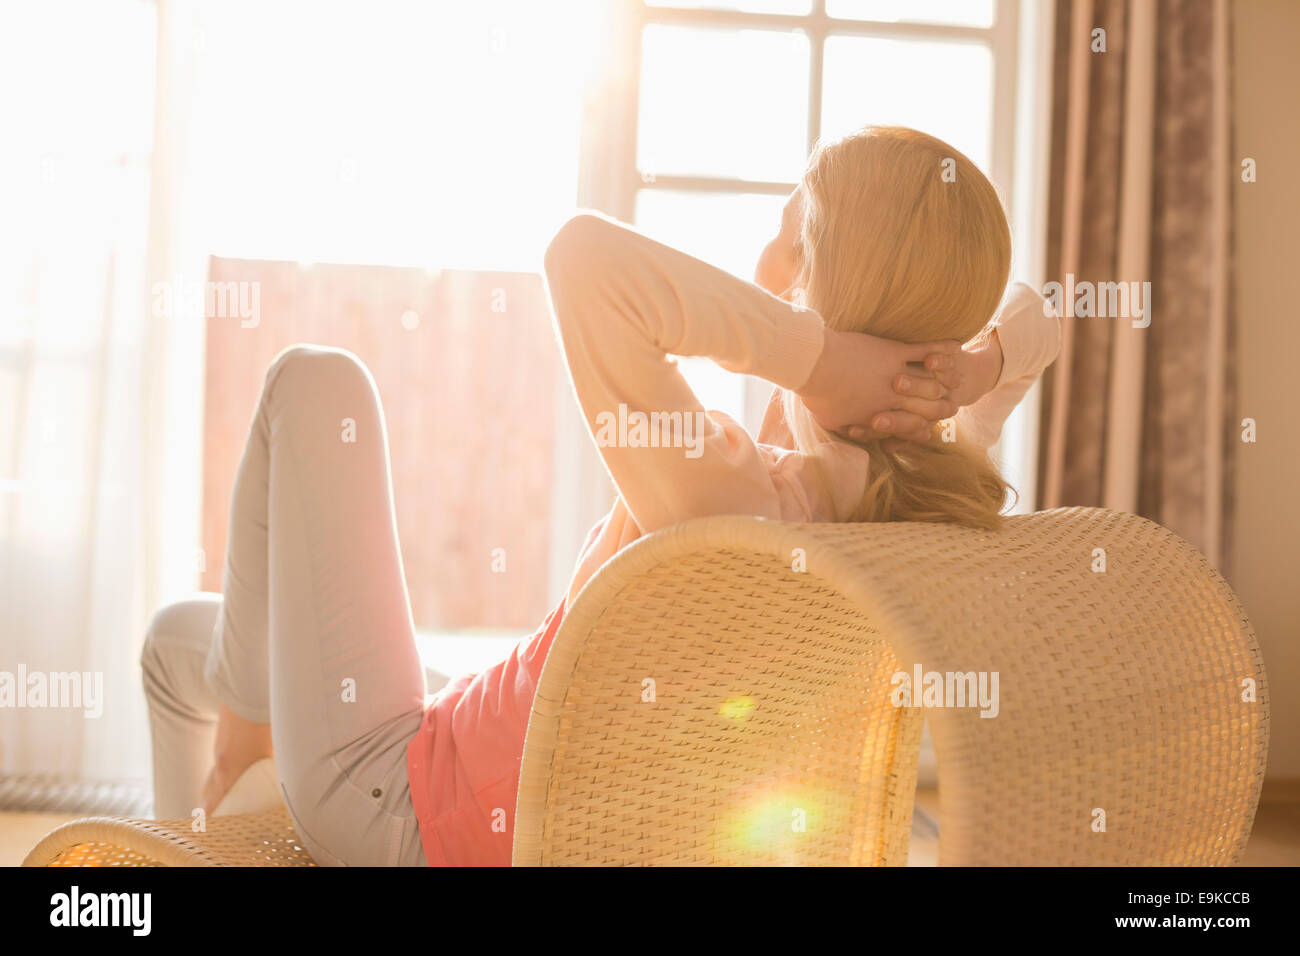 Rear view of woman relaxing on chair at home - Stock Image